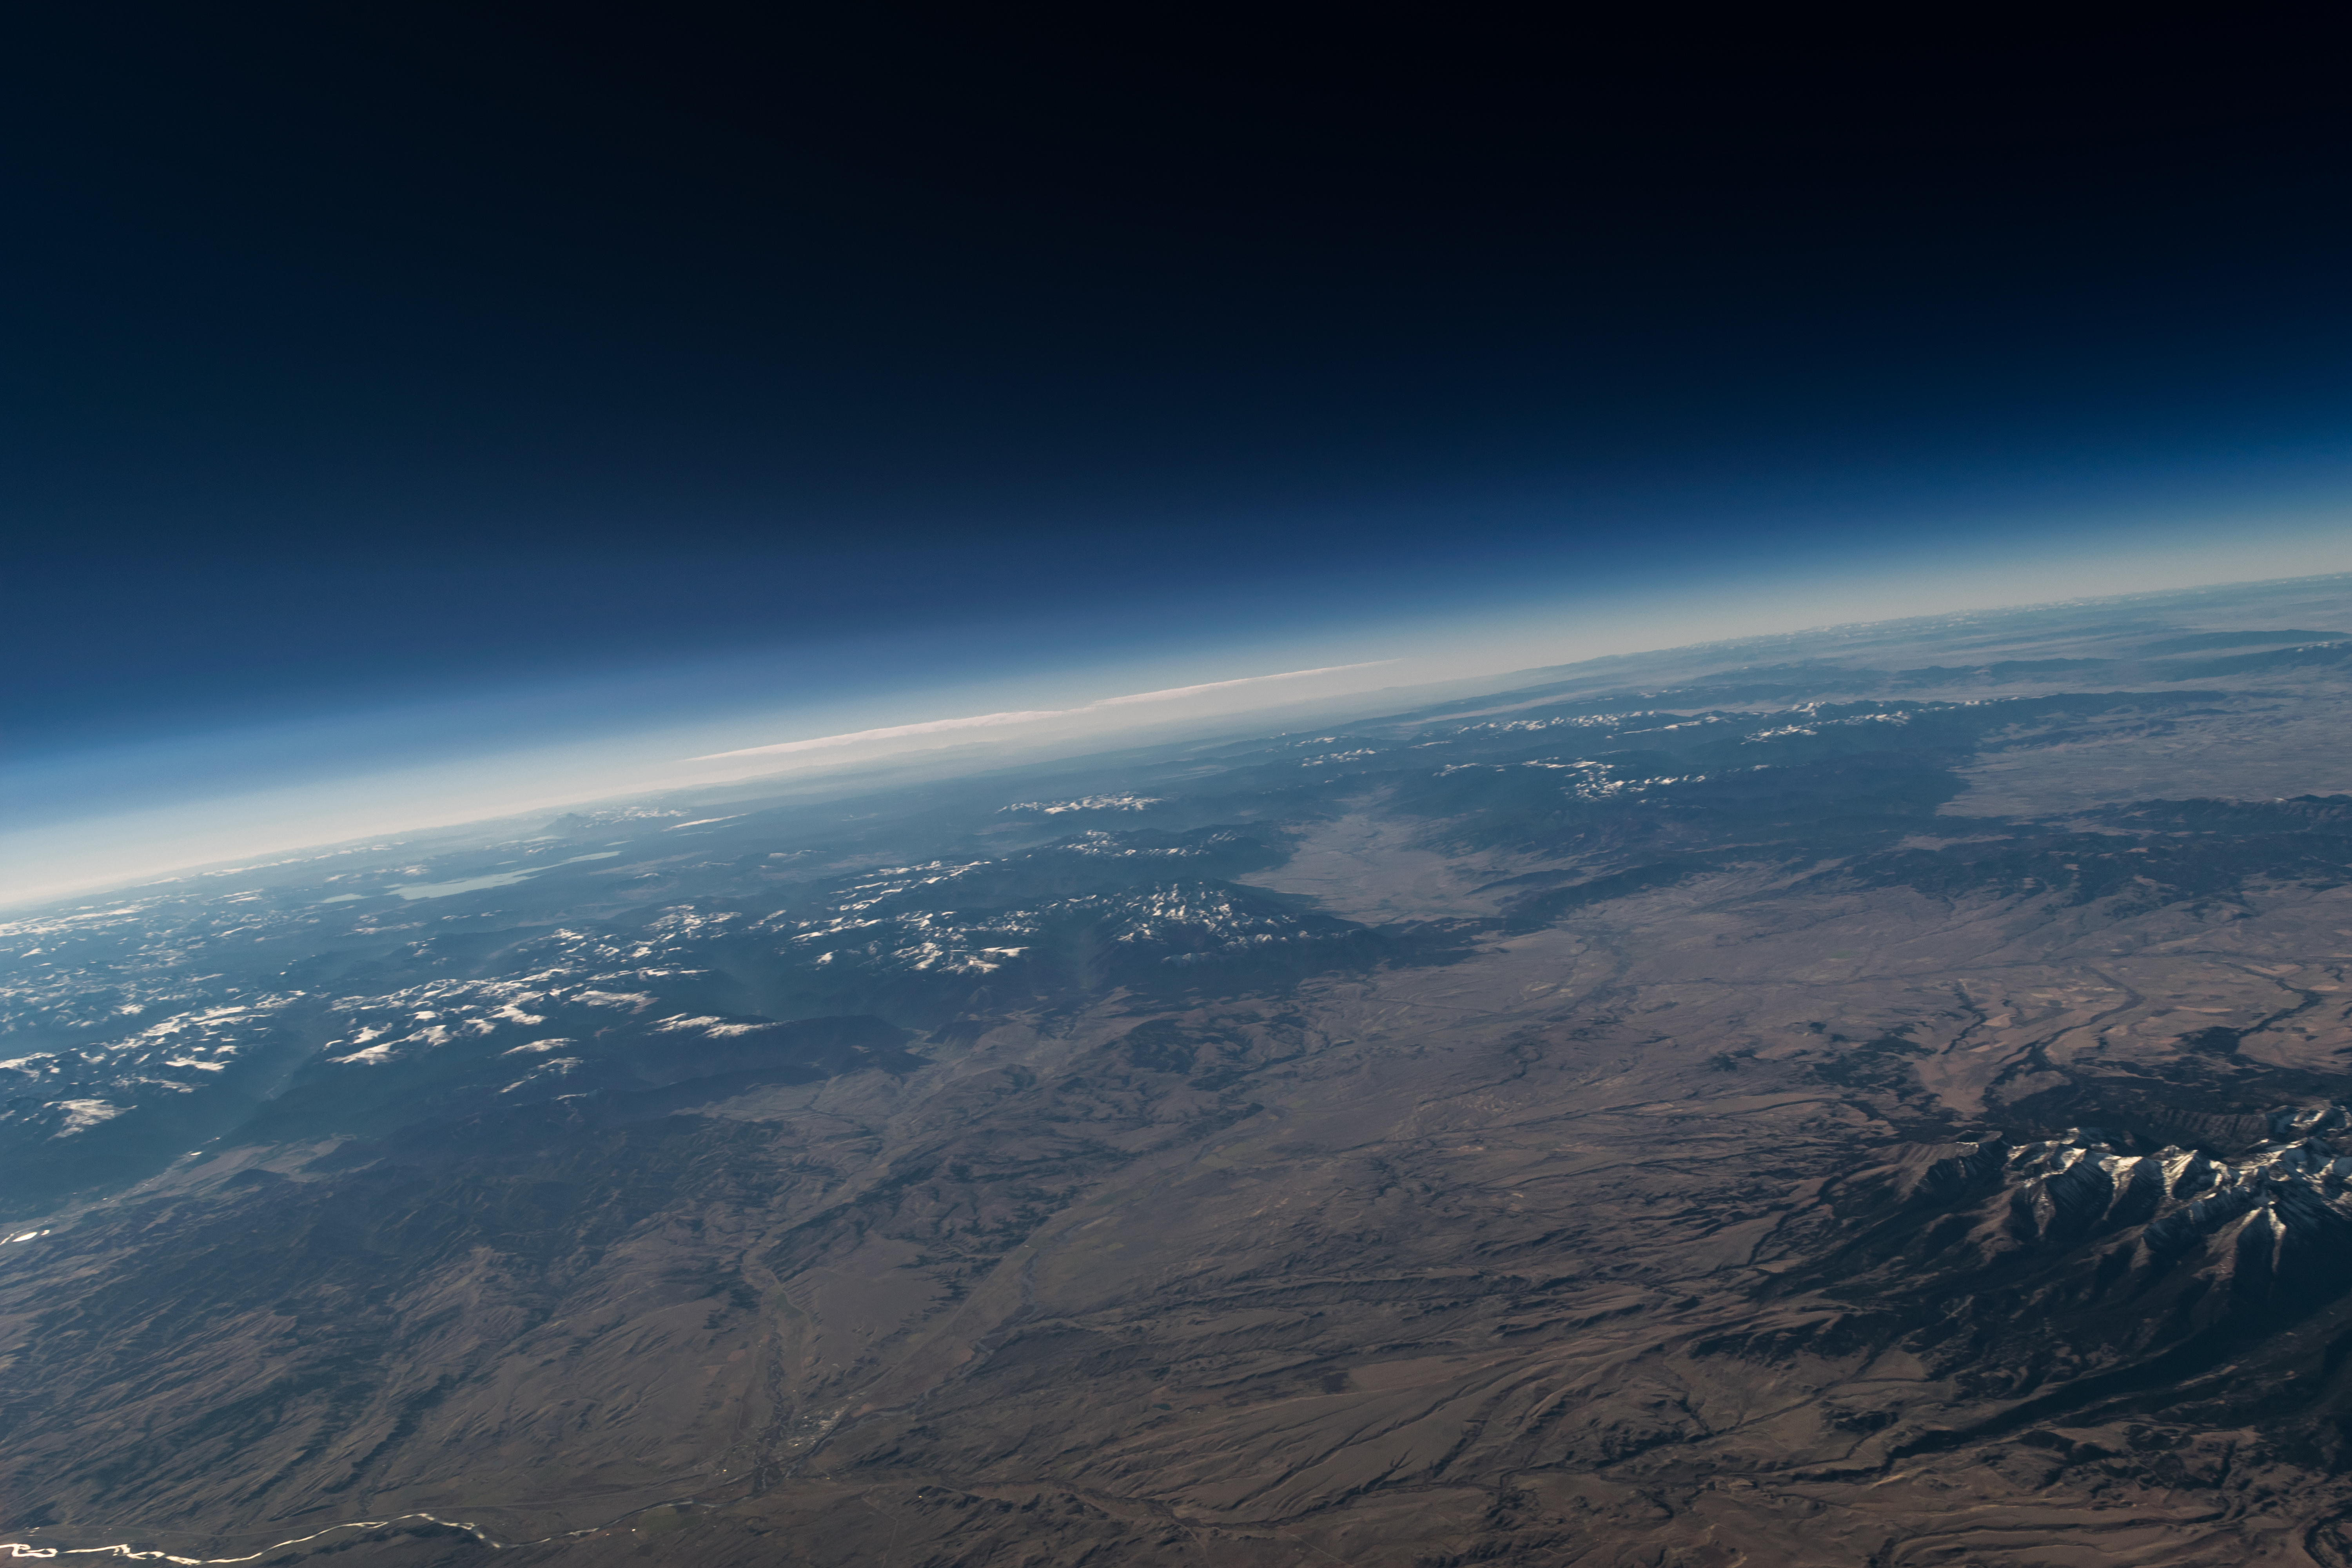 Eclipse balloons to study effect of mars like environment on life